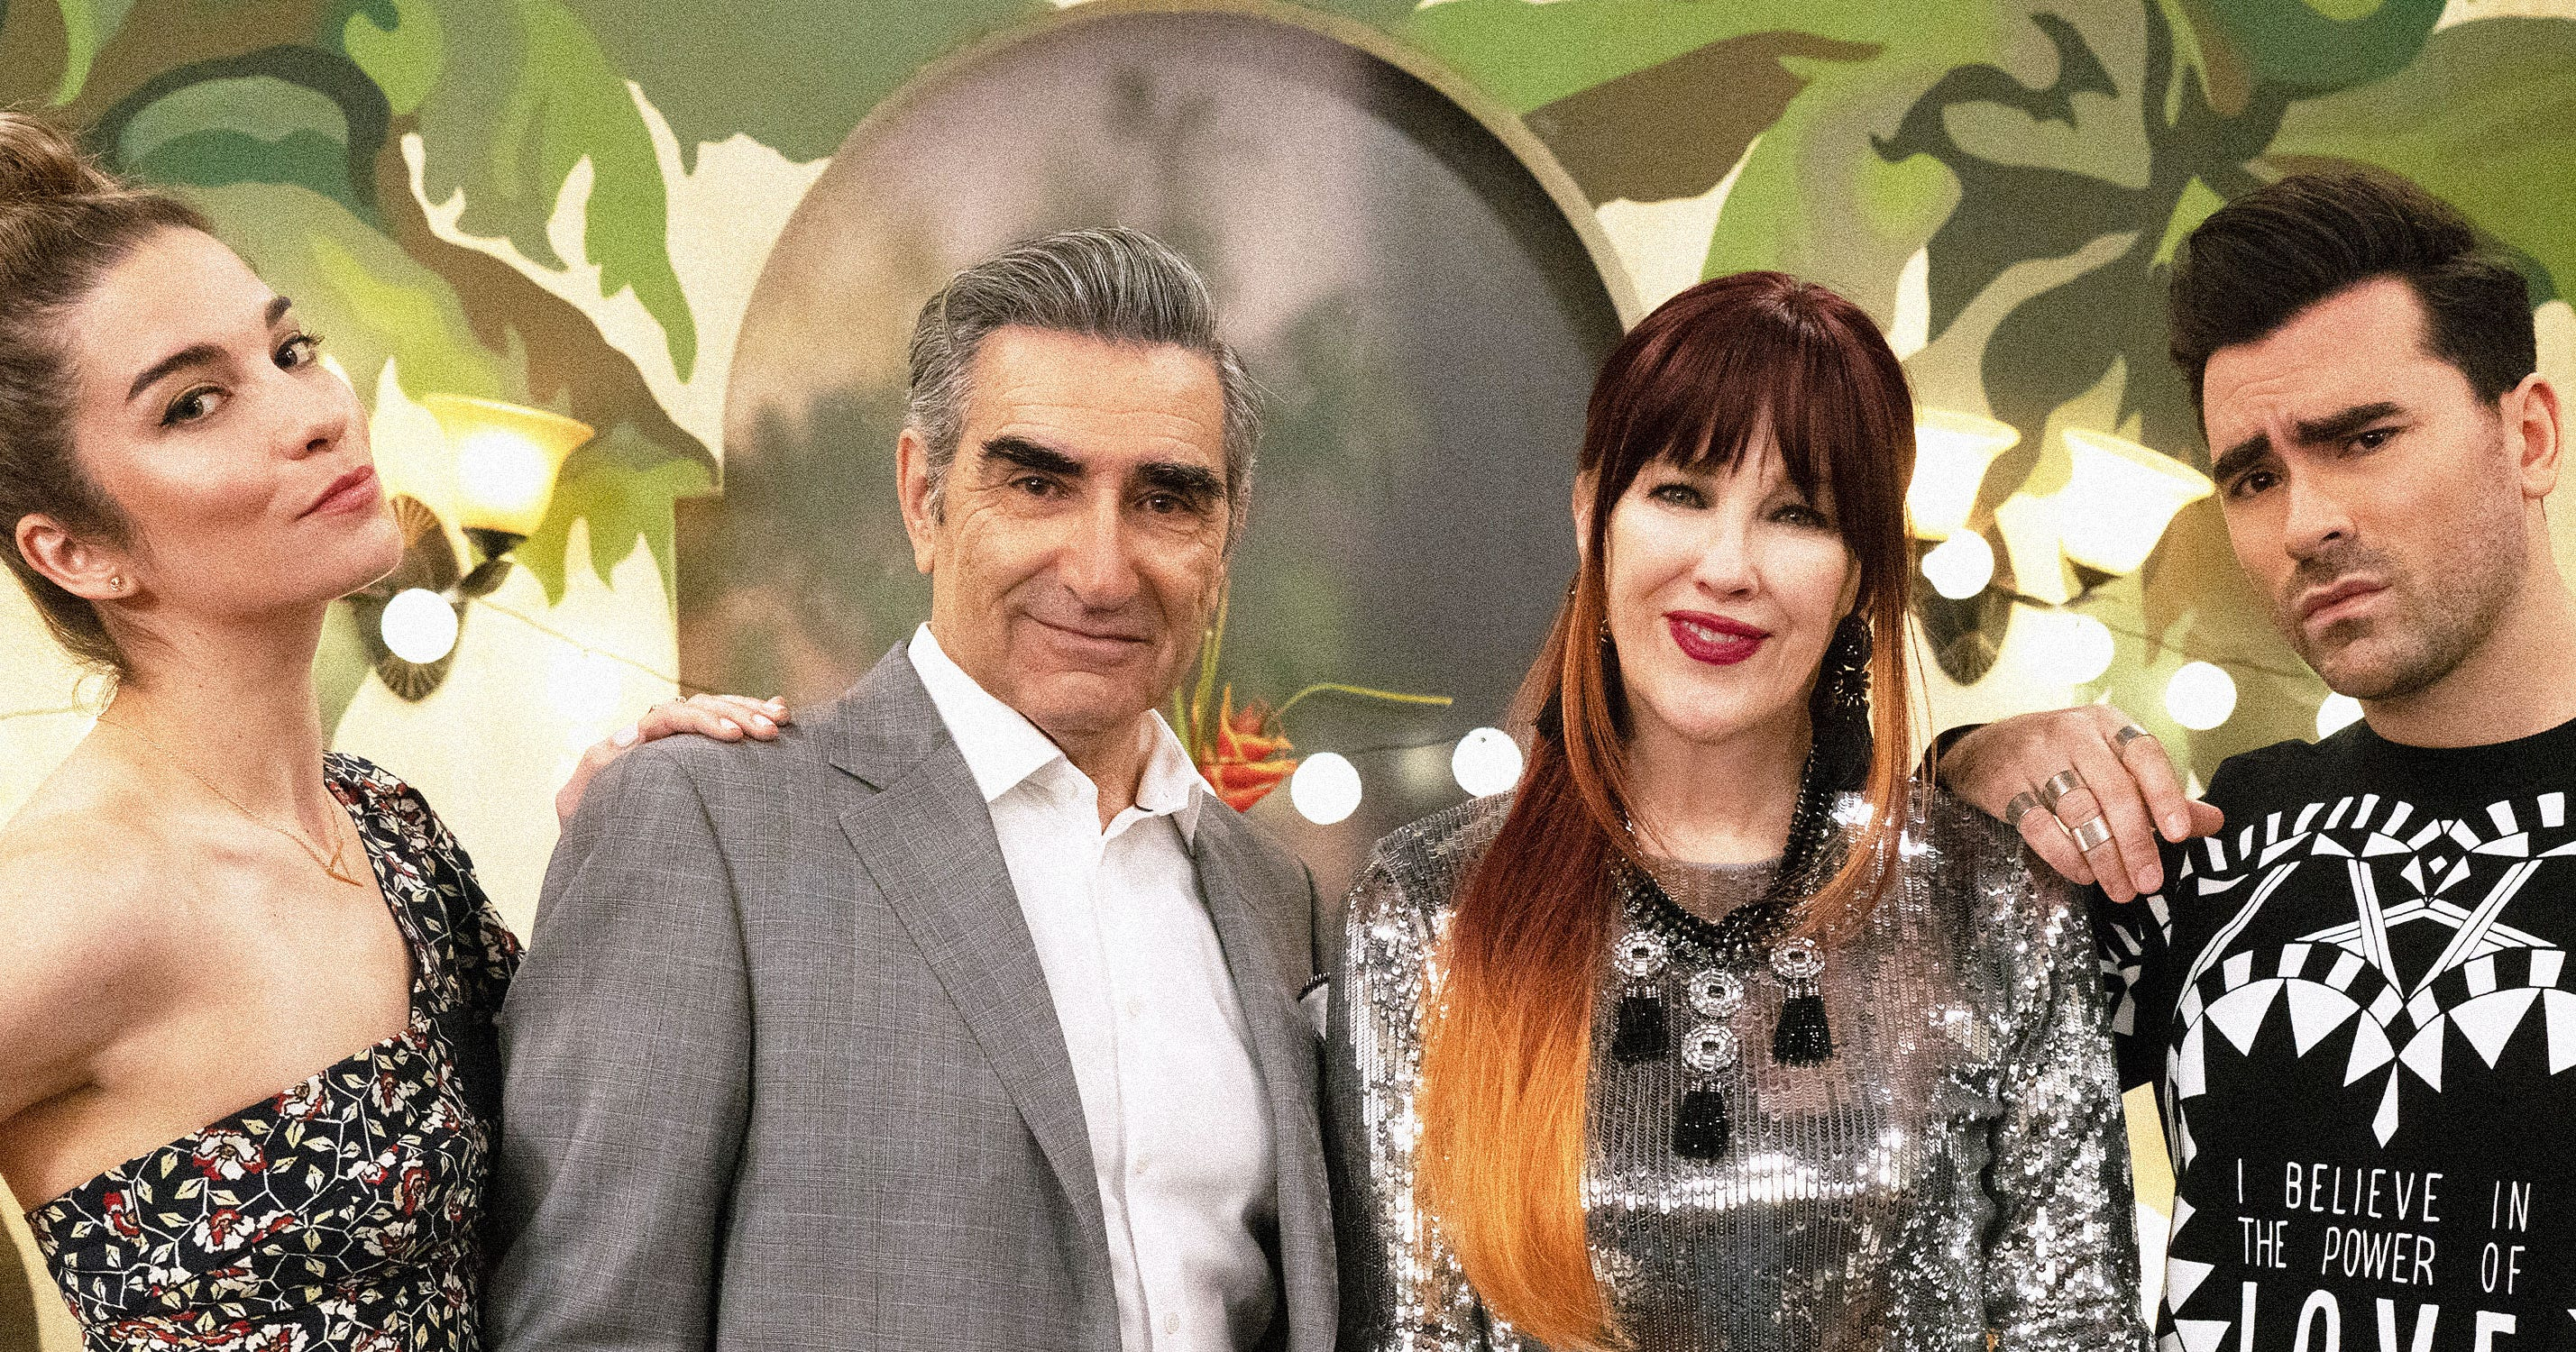 American Pie The Next Generation schitt's creek cast guide to the hilarious characters